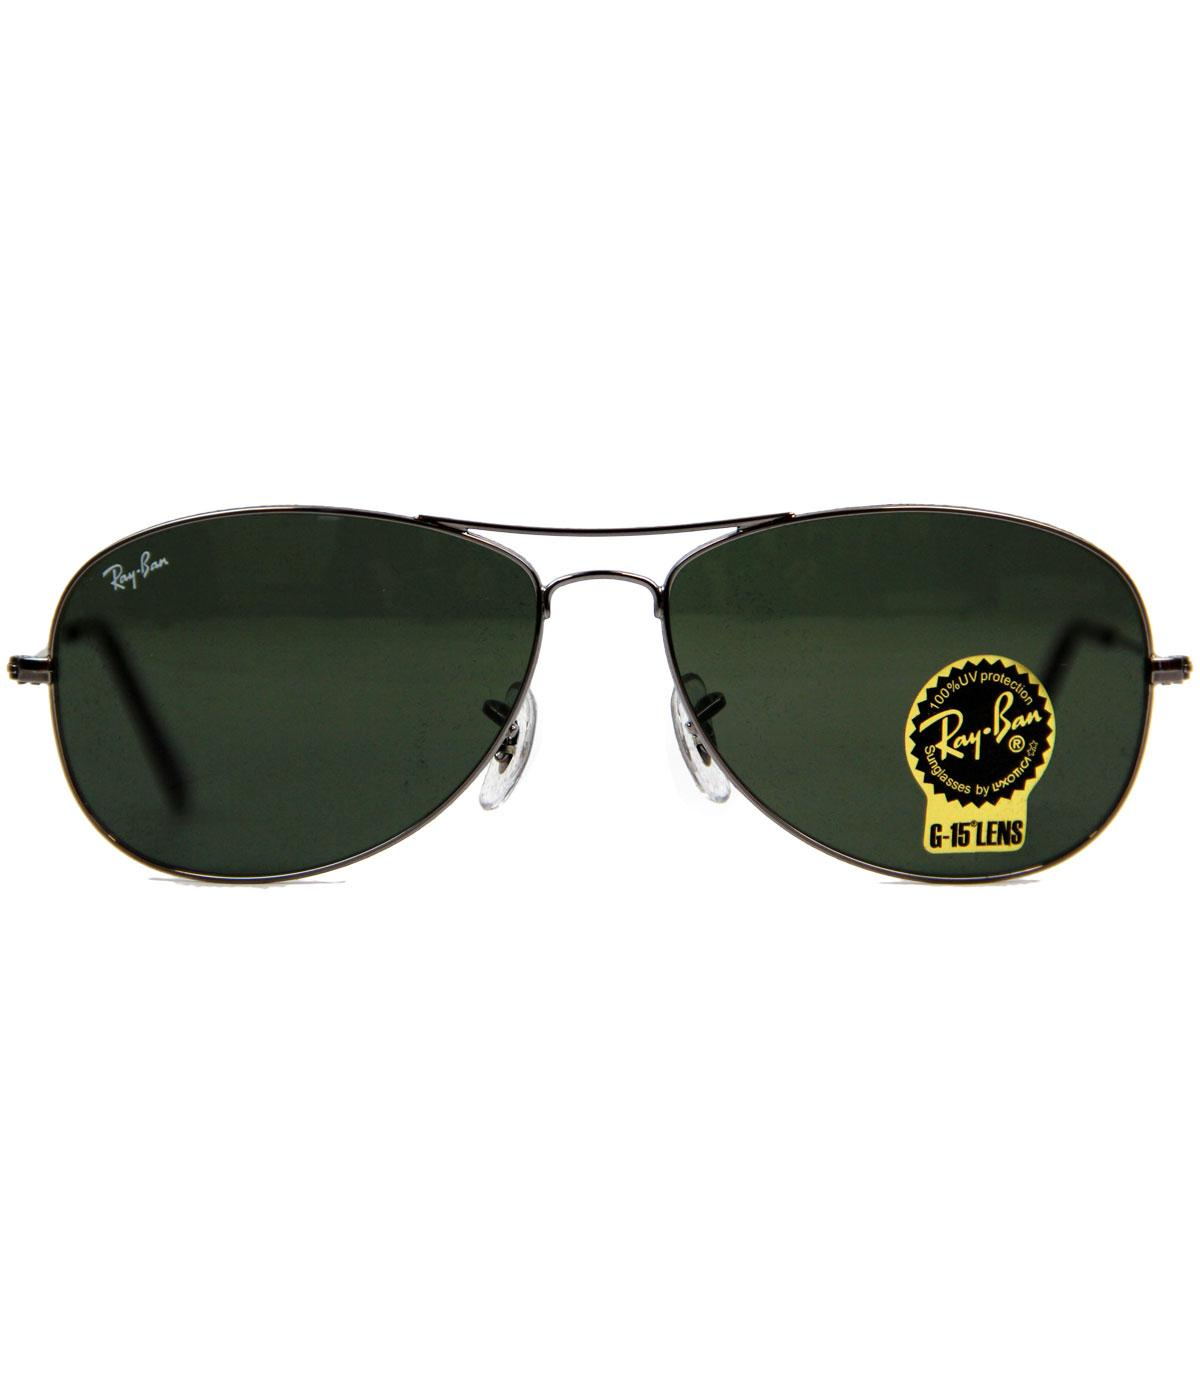 Cockpit Ray-Ban Retro Indie Mod Aviator Sunglasses